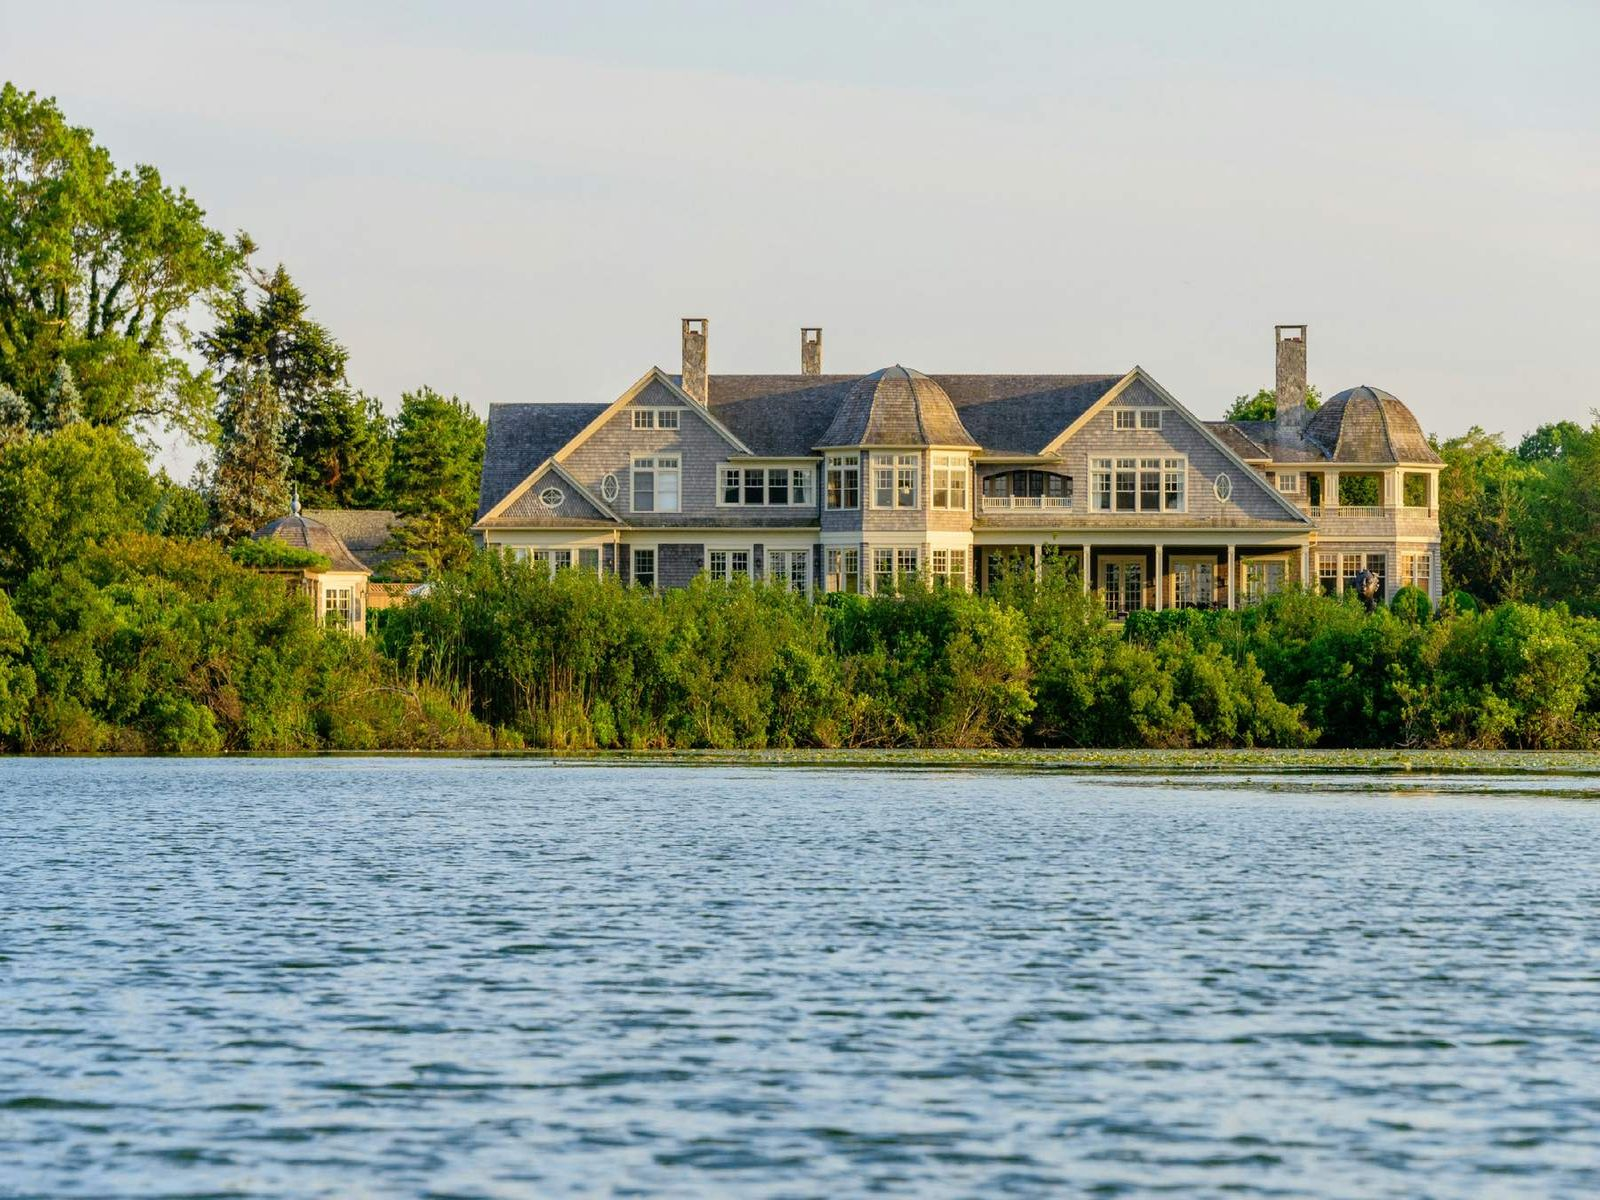 Bois Dores Waterfront Estate, Water Mill, Water Mill NY Single Family Home - Hamptons Real Estate